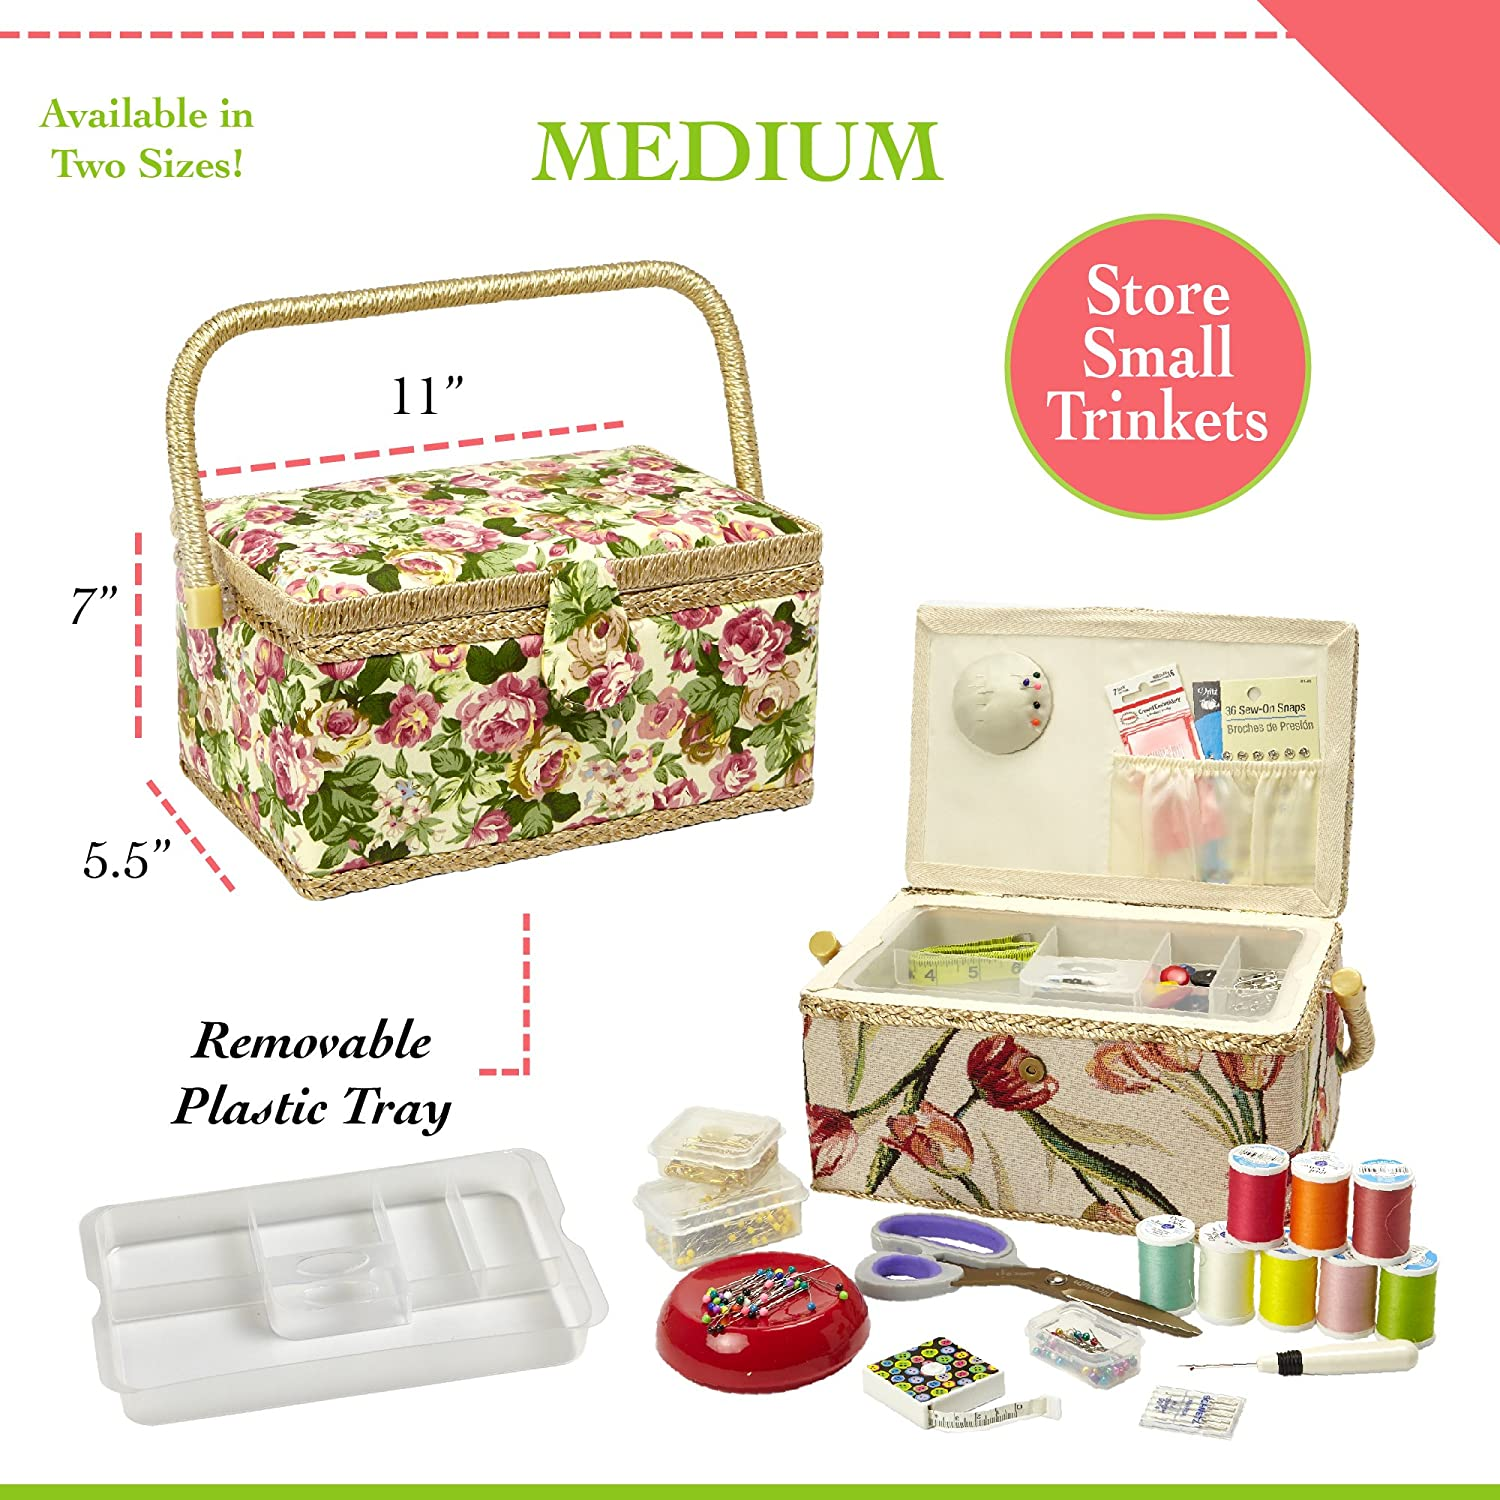 Built-In Pin Cushion and Interior Pocket Medium 11 x 7 x 5.5 by Adolfo Design Sewing Basket with Tulip Floral Print Design- Sewing Kit Storage Box with Removable Tray